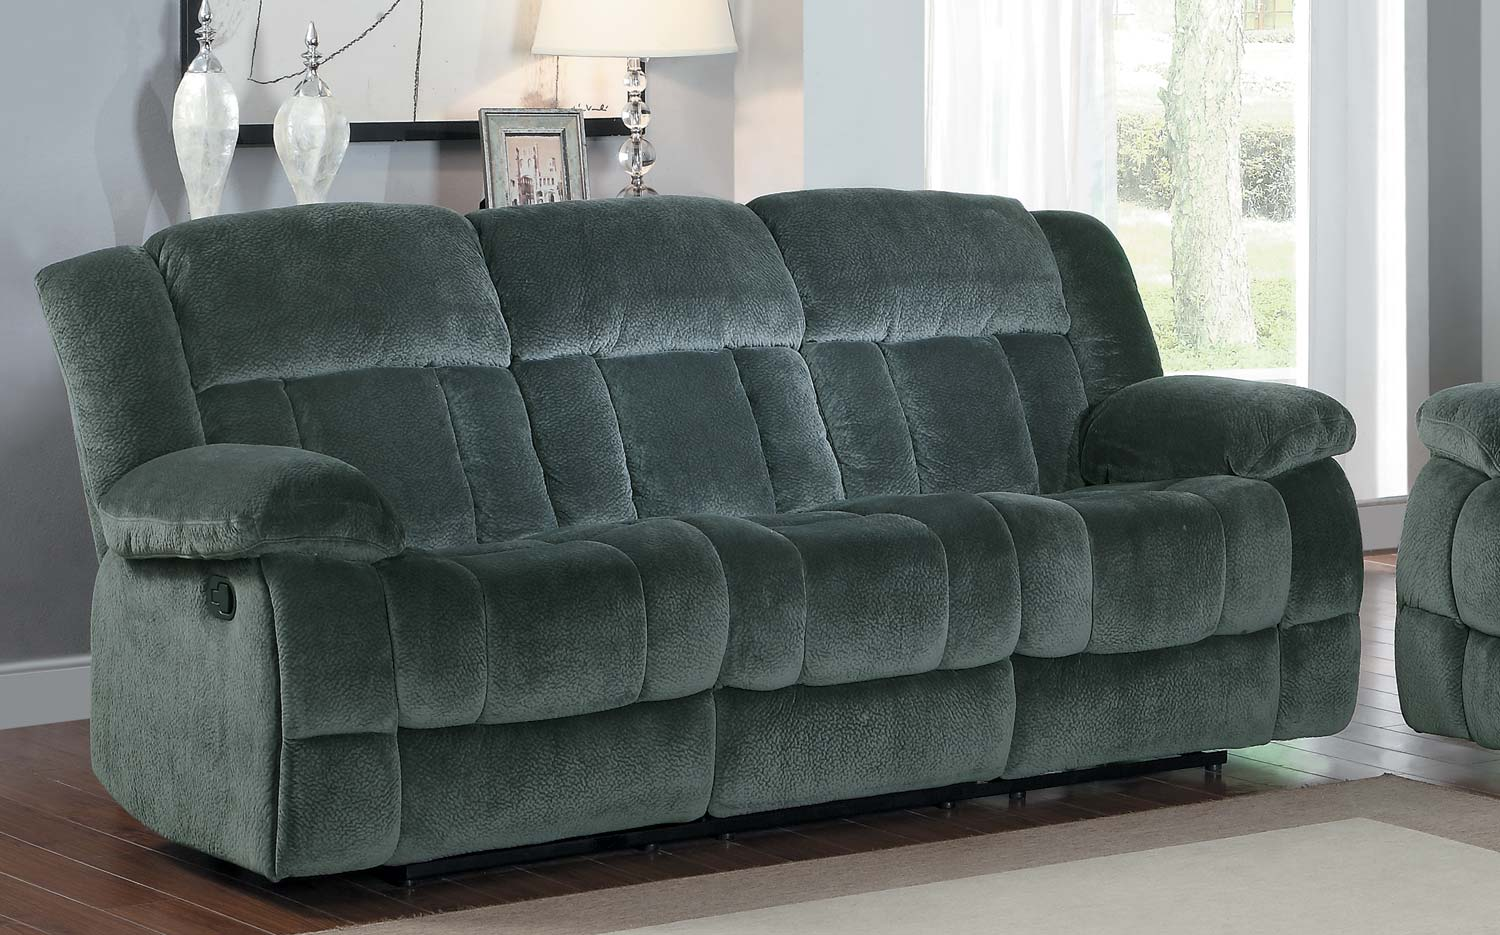 Picture of: Homelegance Laurelton Double Reclining Sofa Charcoal Textured Plush Microfiber 9636cc 3 At Homelement Com